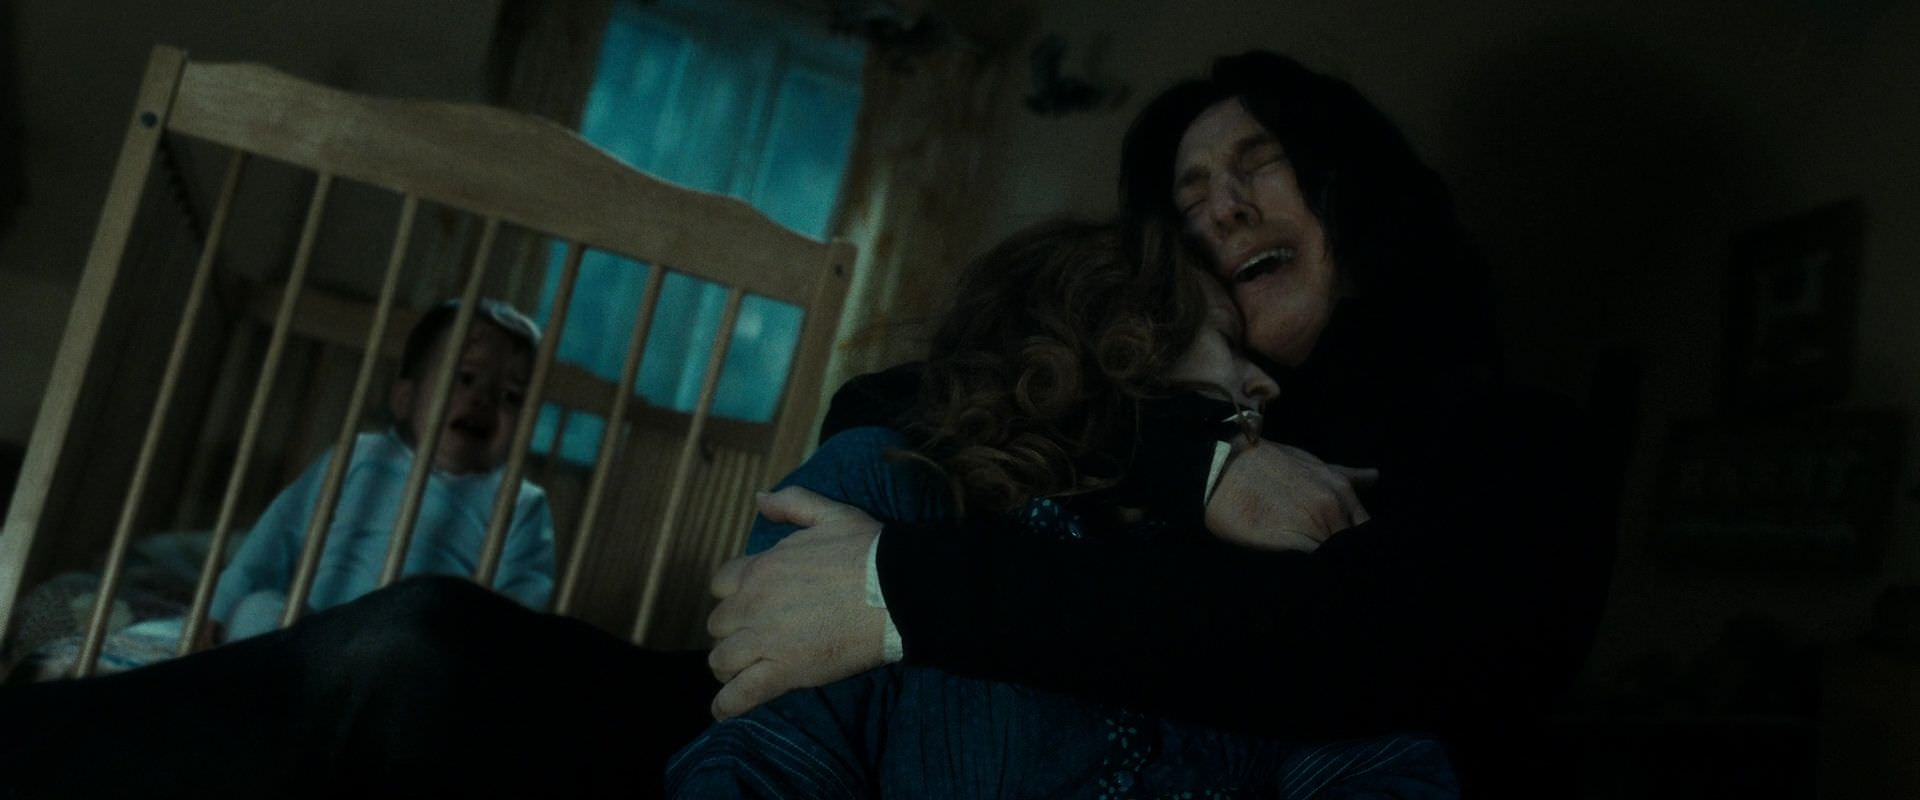 Harry-Potter-7-Deathly-Hallows-Part-2-severus-snape-and-lily-evans-27568489-1920-800